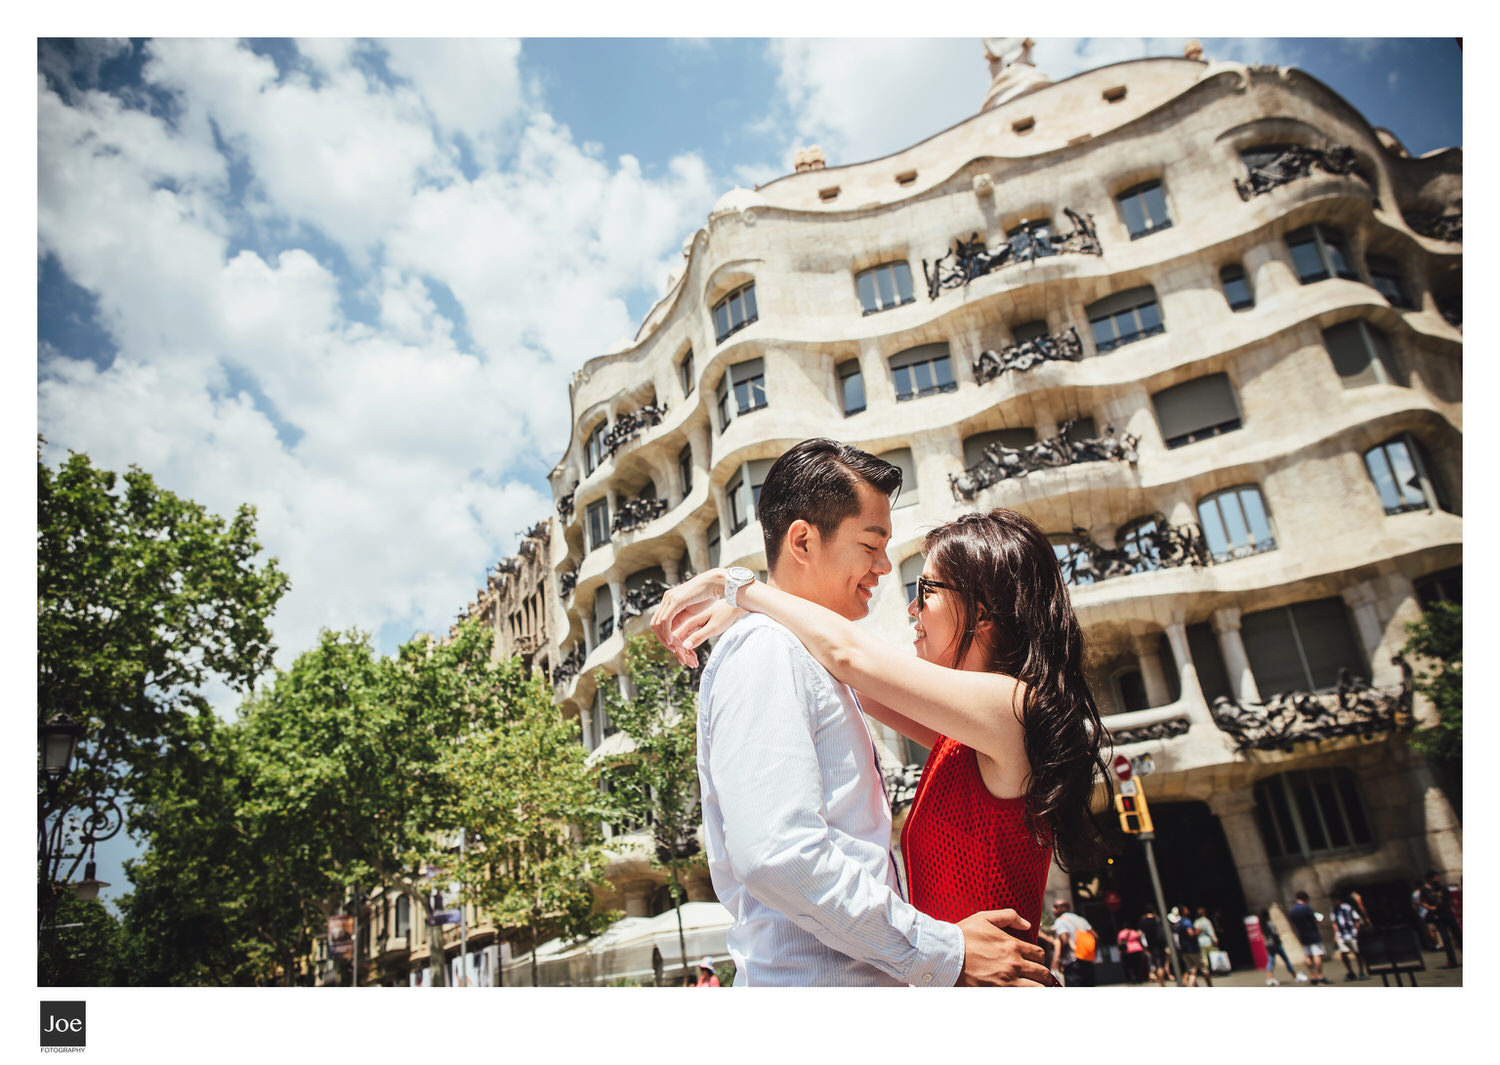 joe-fotography-56-barcelona-la-pedrera-pre-wedding-linda-colin.jpg